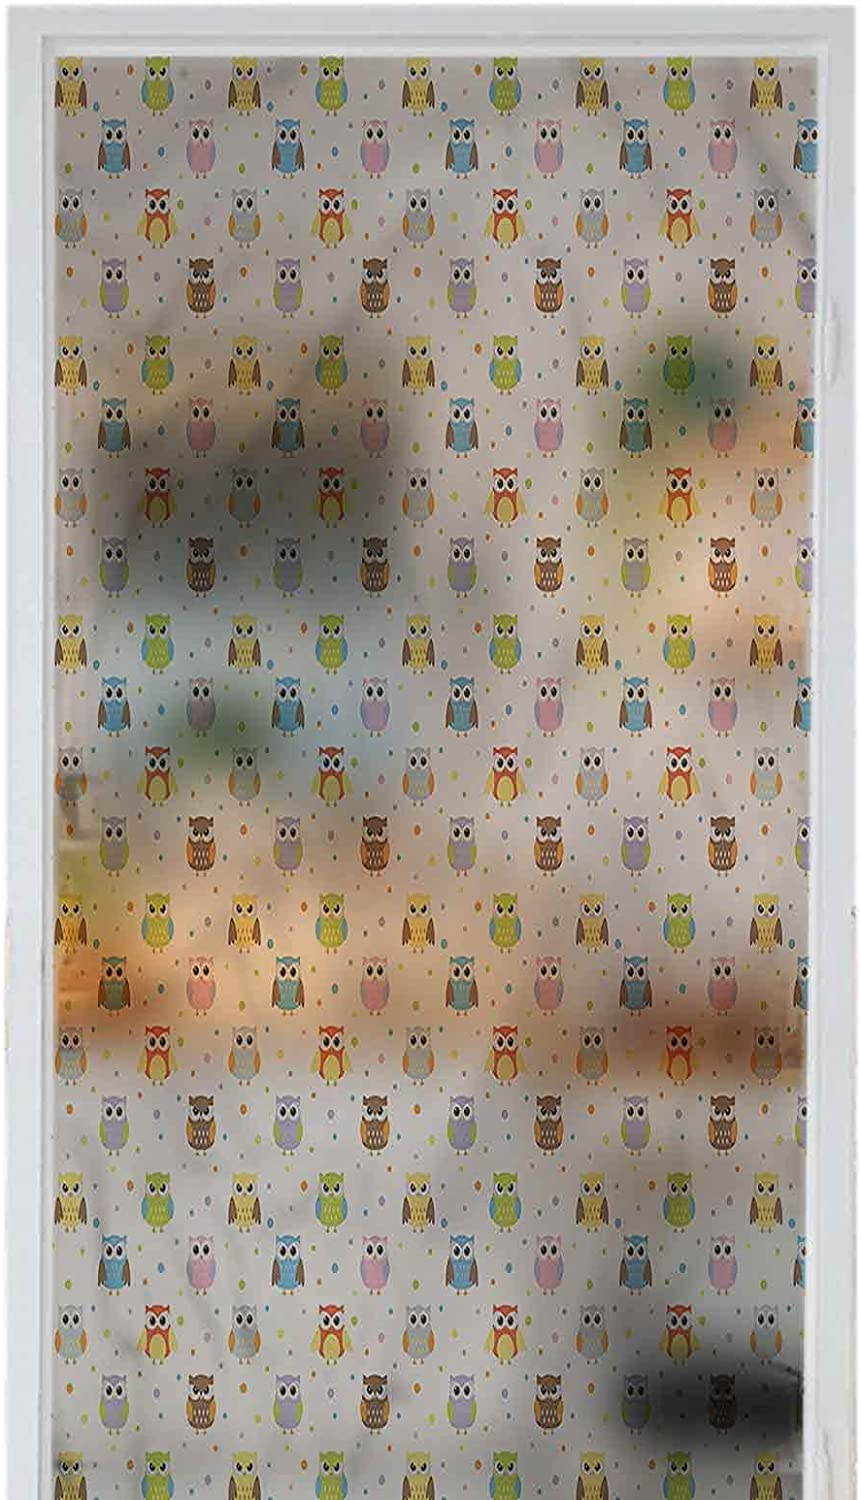 Homesonne Bathroom Window Film PVC C Angry Waterproof Direct stock discount Max 49% OFF Owls Funny